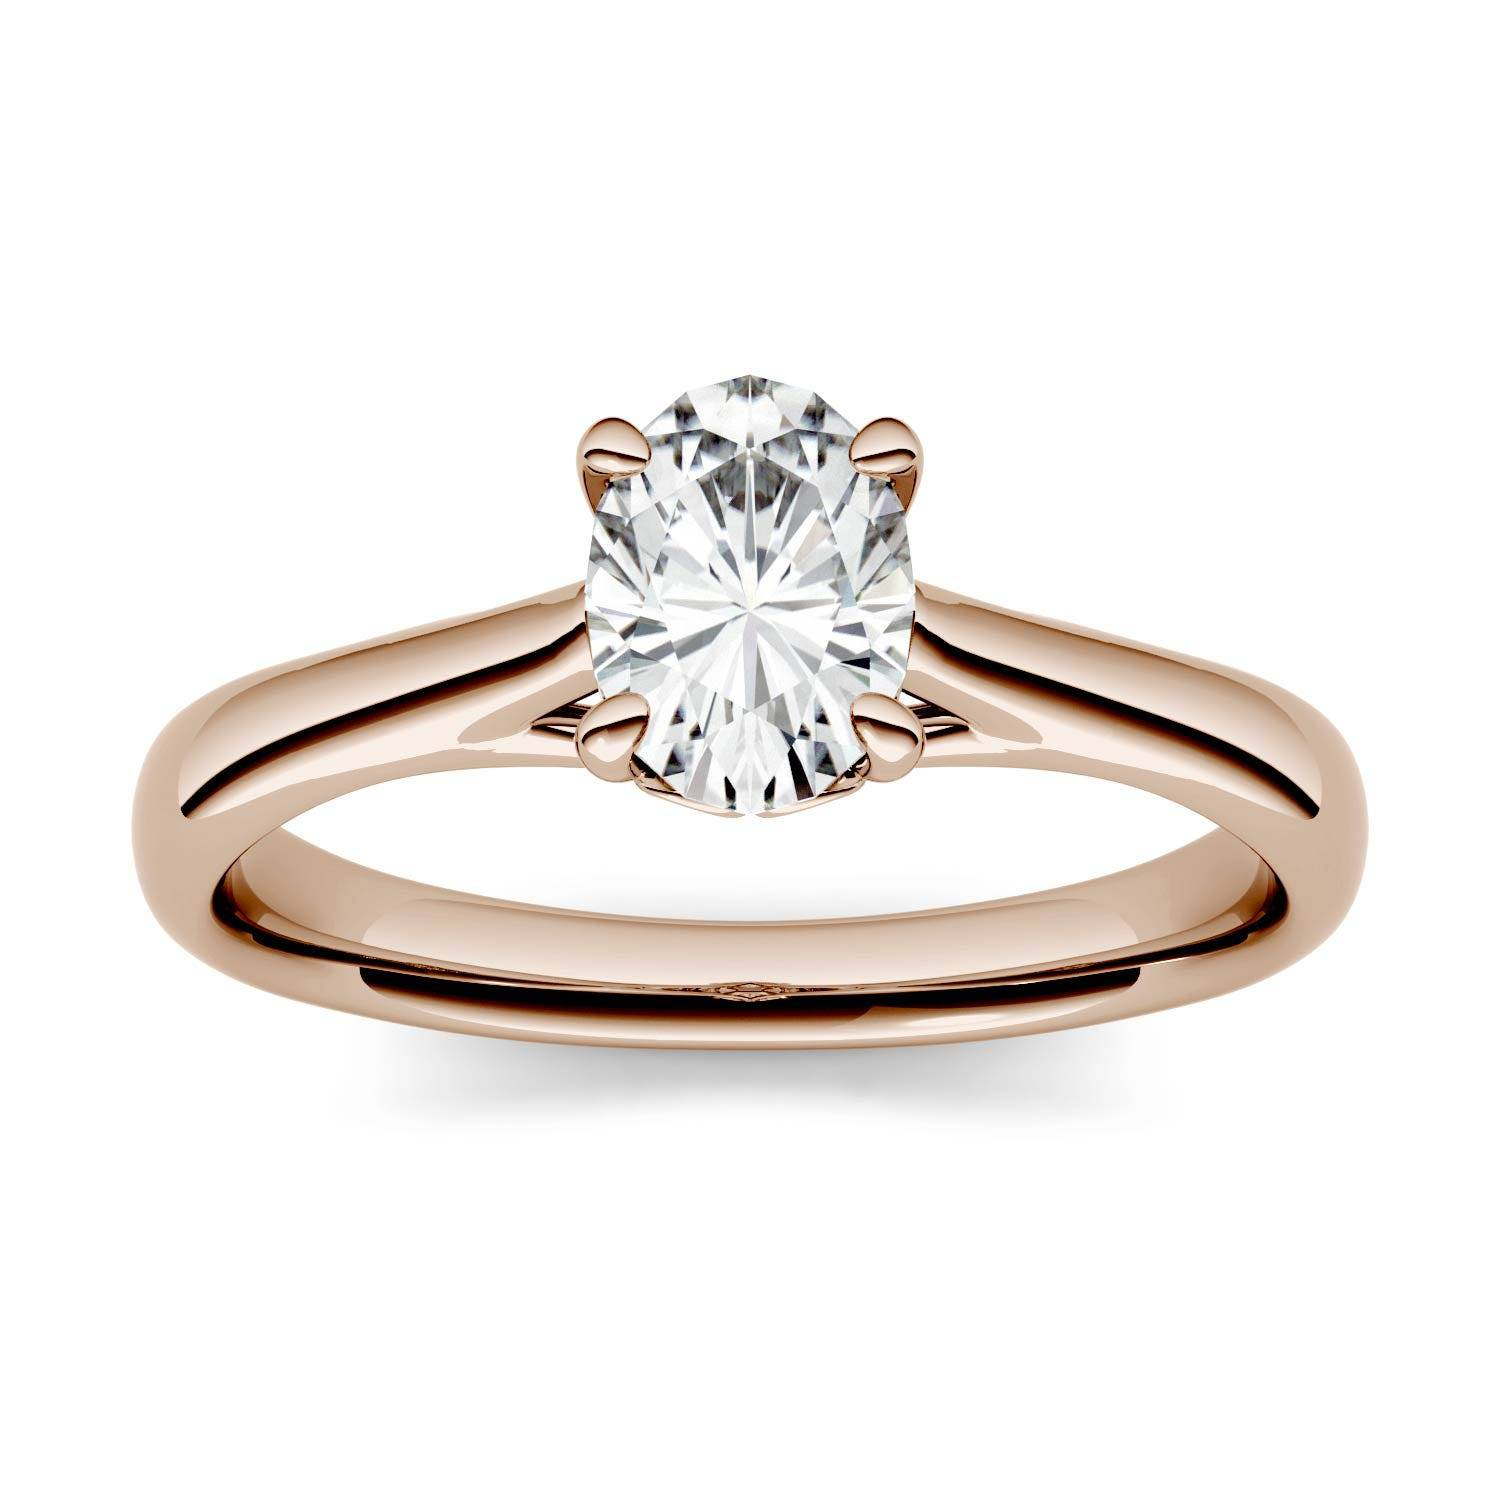 Charles & Colvard Four Prong Solitaire Engagement Ring in 14K Rose Gold, Size: 7, 0.90CTW Oval Forever One - Near-Colorless Moissanite Charles & Colvard  - Rose Gold - Size: 7